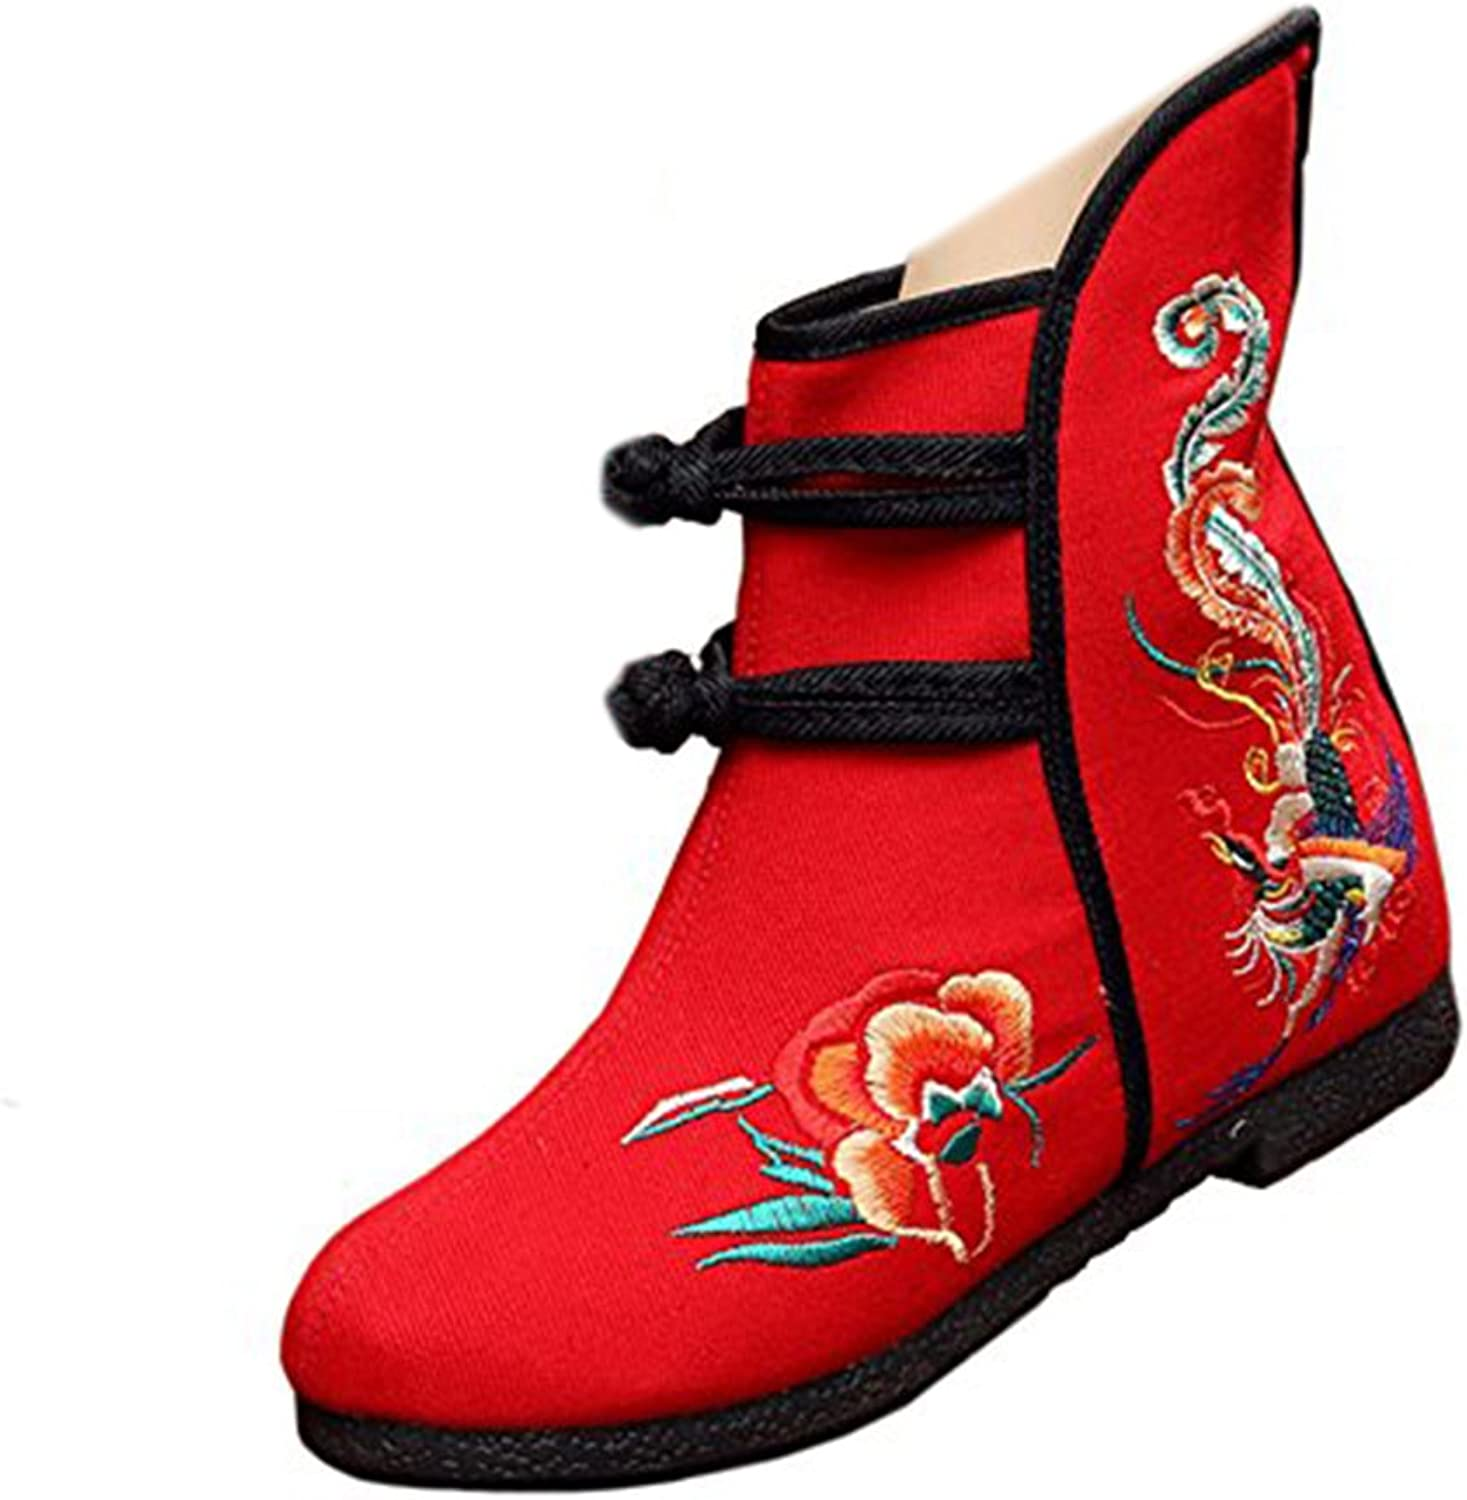 Shenghuajie Vintage Beijing Cloth shoes Embroidered Boots 12-01 red with Cotton